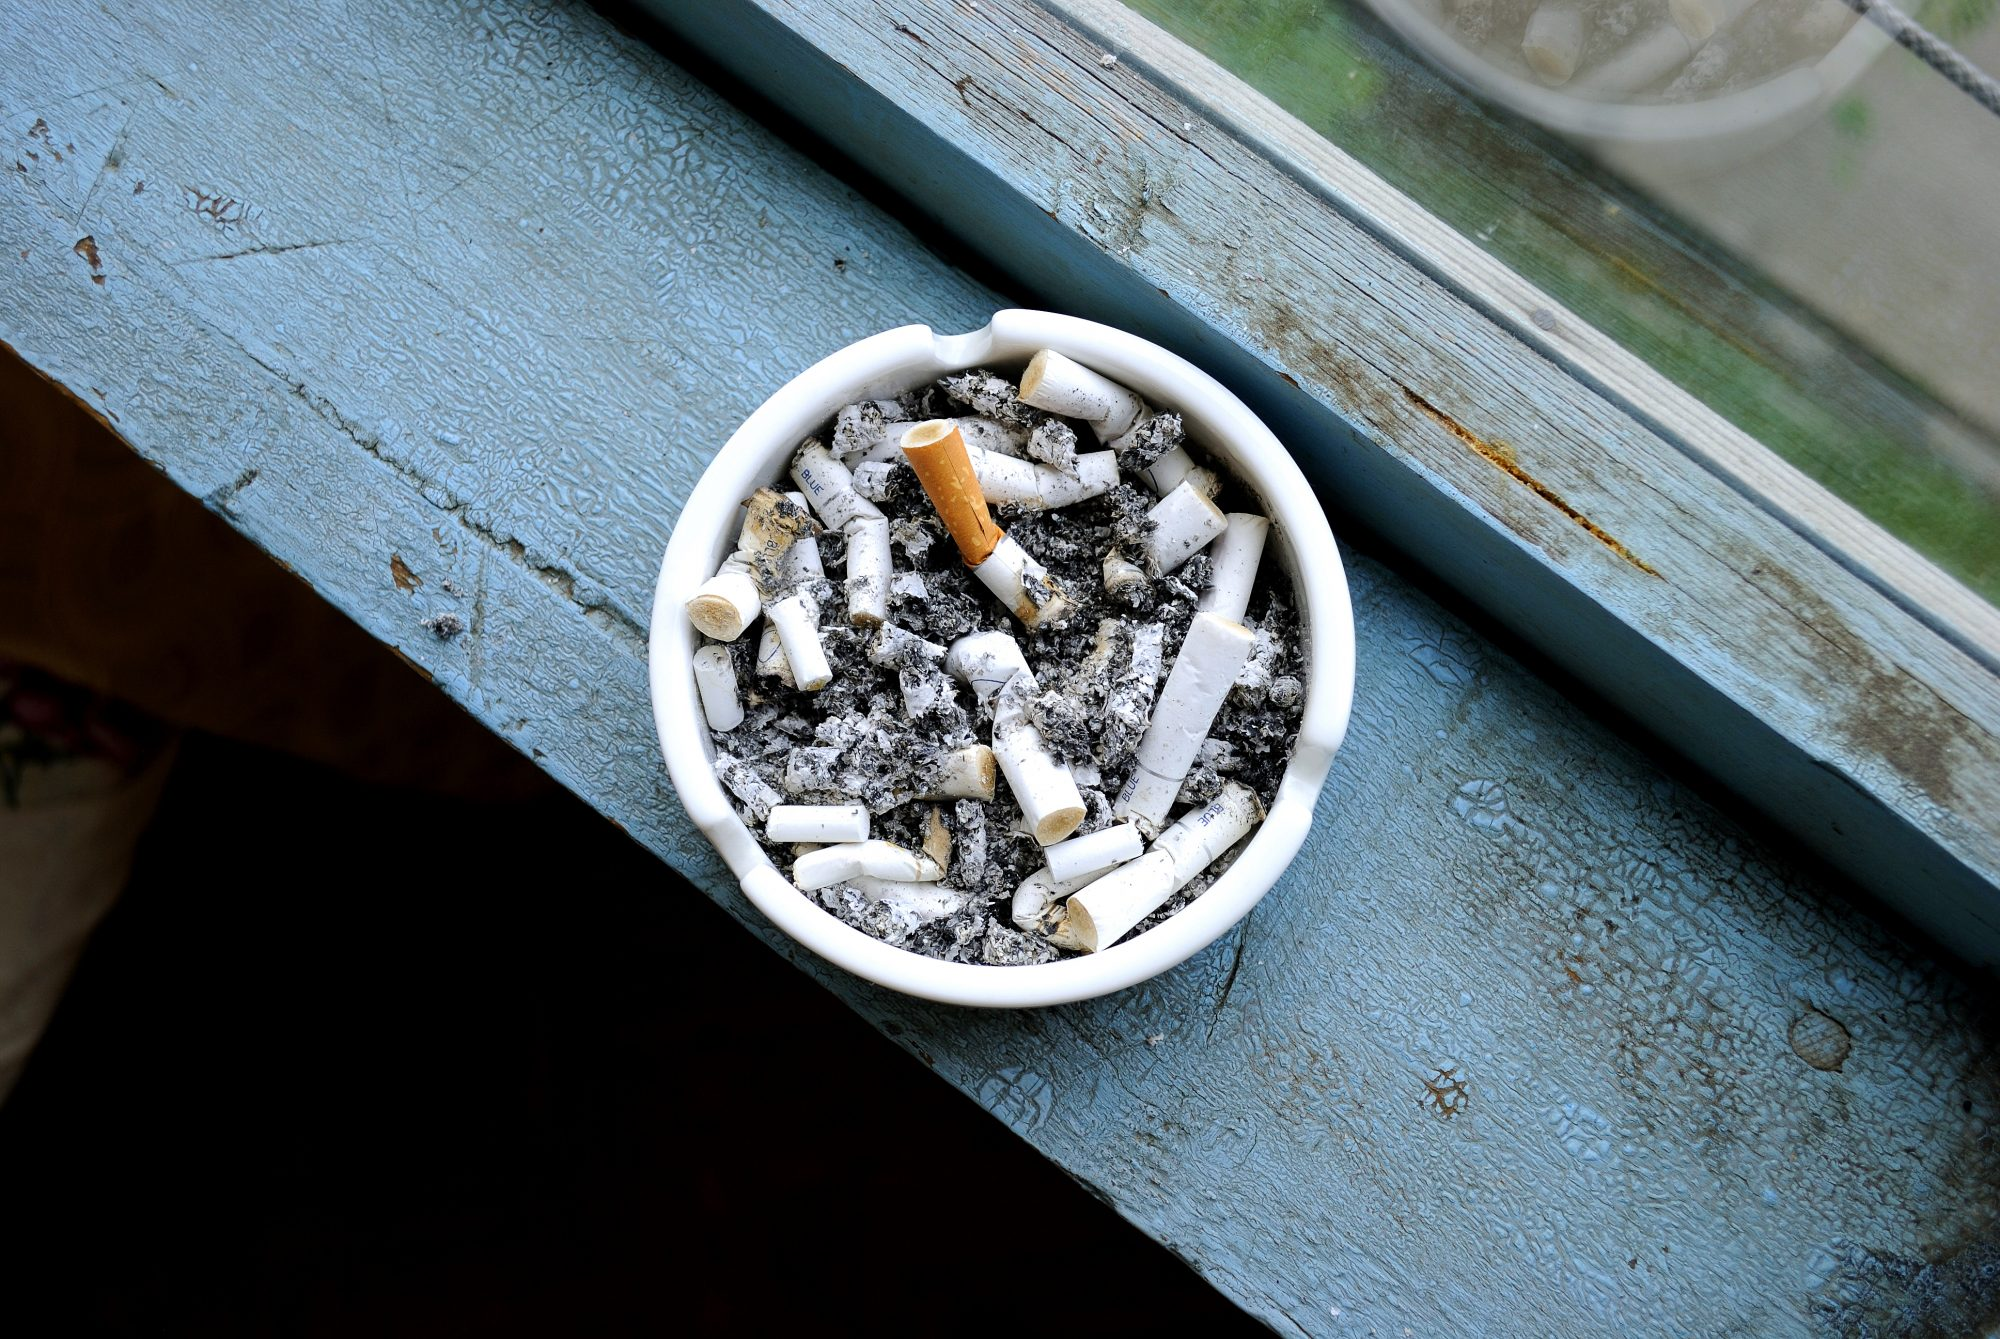 Cigarettes in Ash Tray